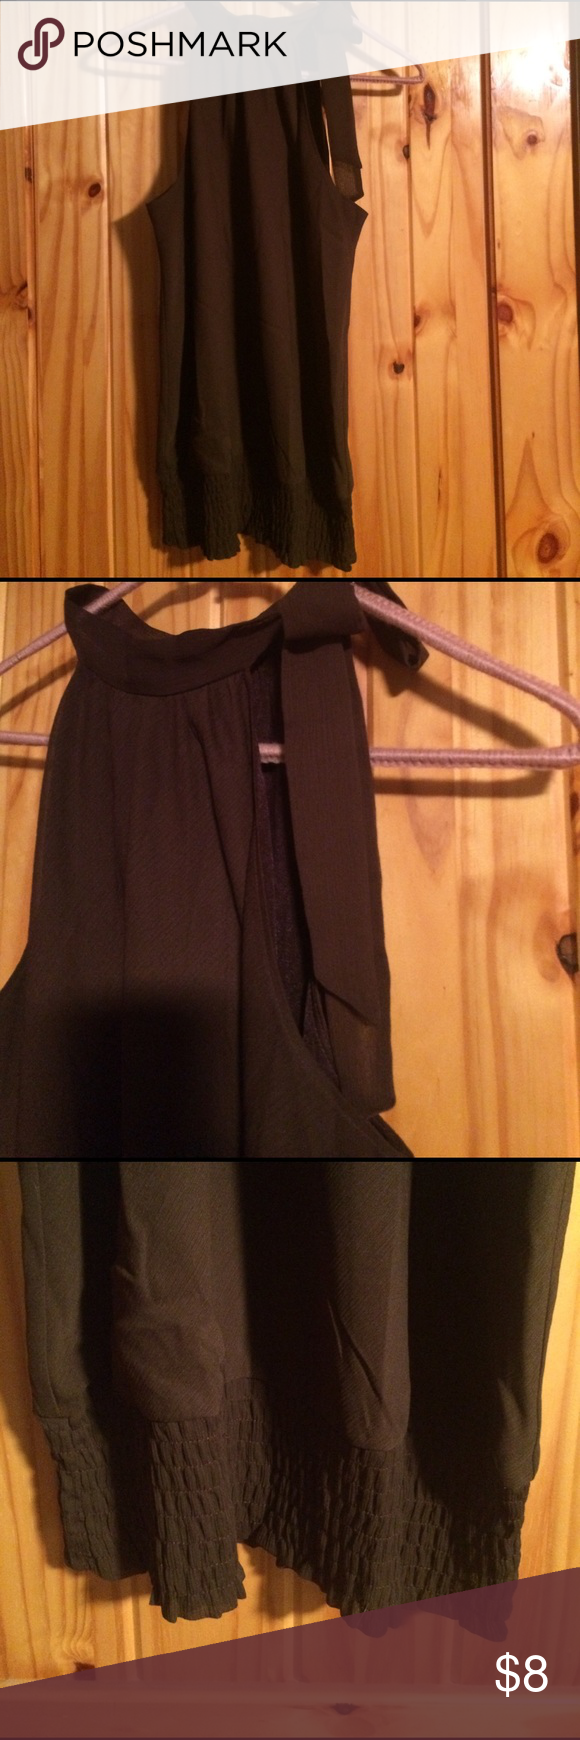 Brown Dress Top Sleeveless dark brown shear dress top with cute tie collar. NWOT Cato Tops Blouses